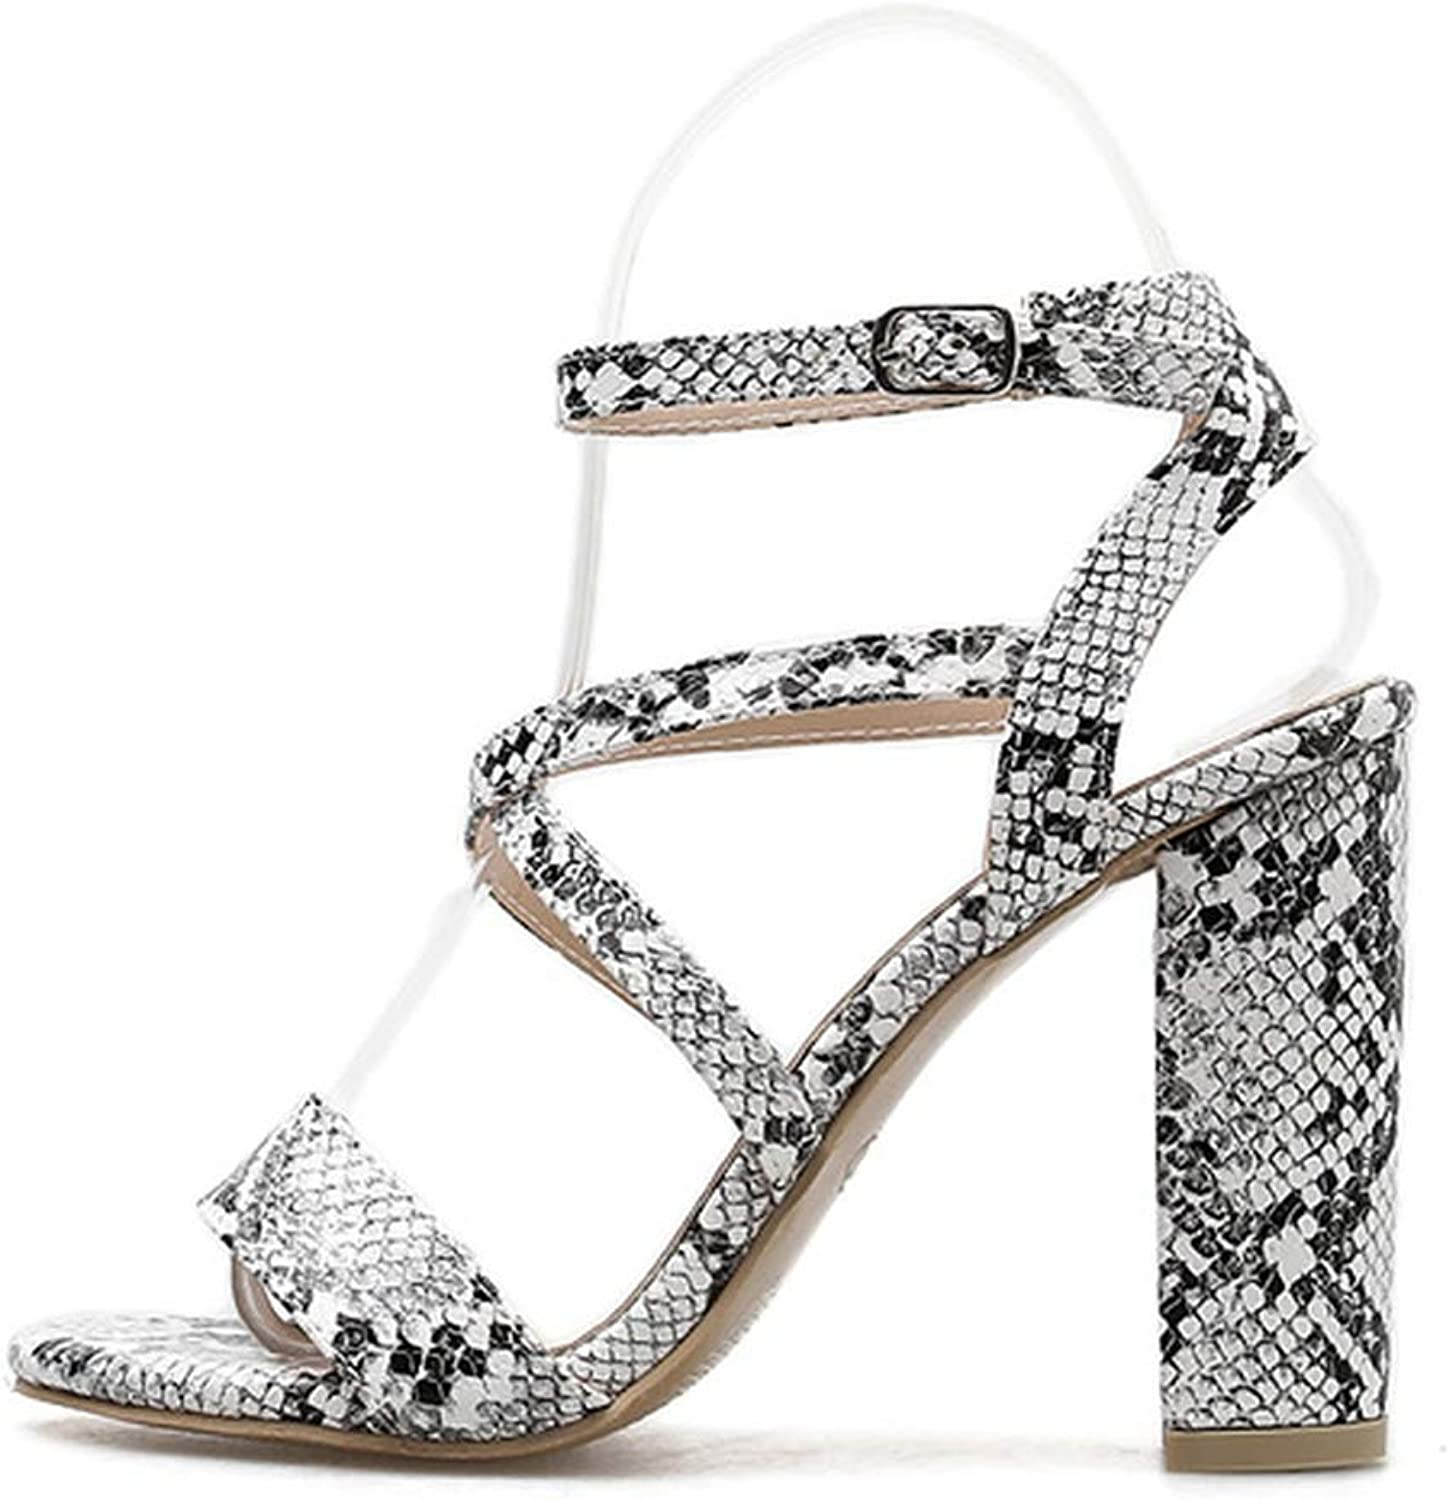 Little SU Sexy Snakeskin Open Toe Sandals Thick High Heels Buckle Strap Cross Tied Fashion shoes